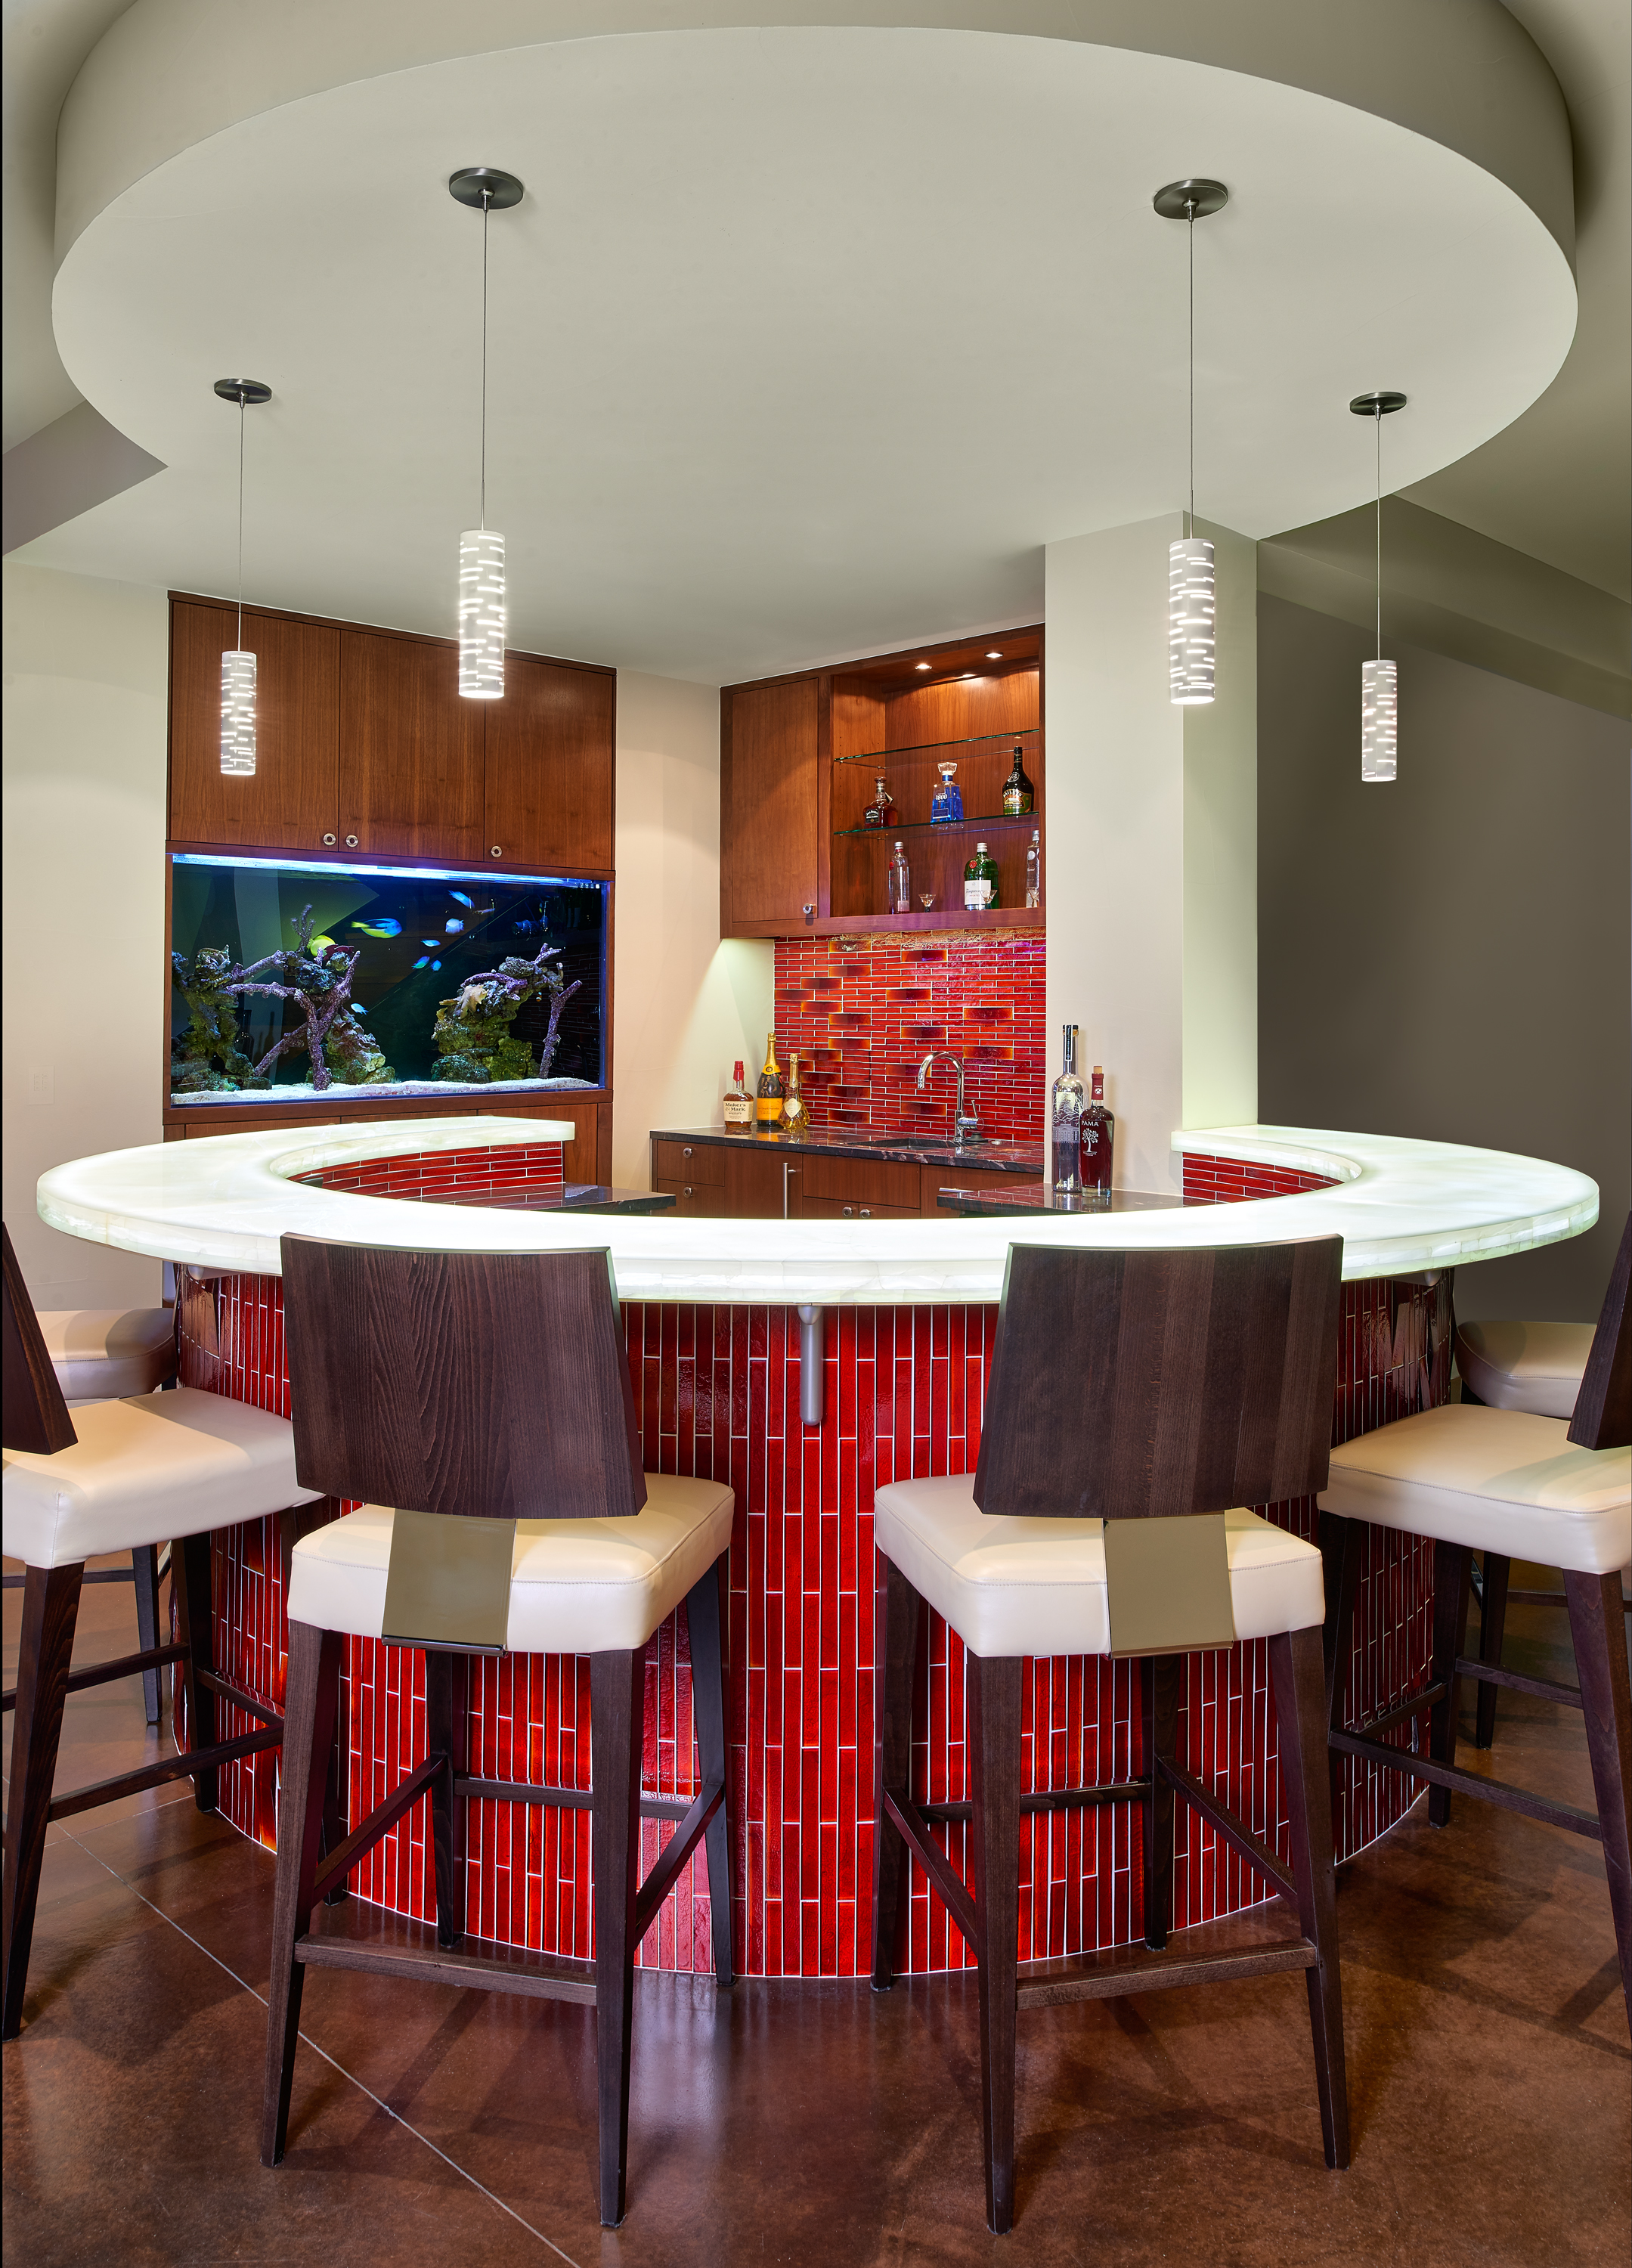 billups residence denver co, yk stone center countertops, chauncey billups house englewood co